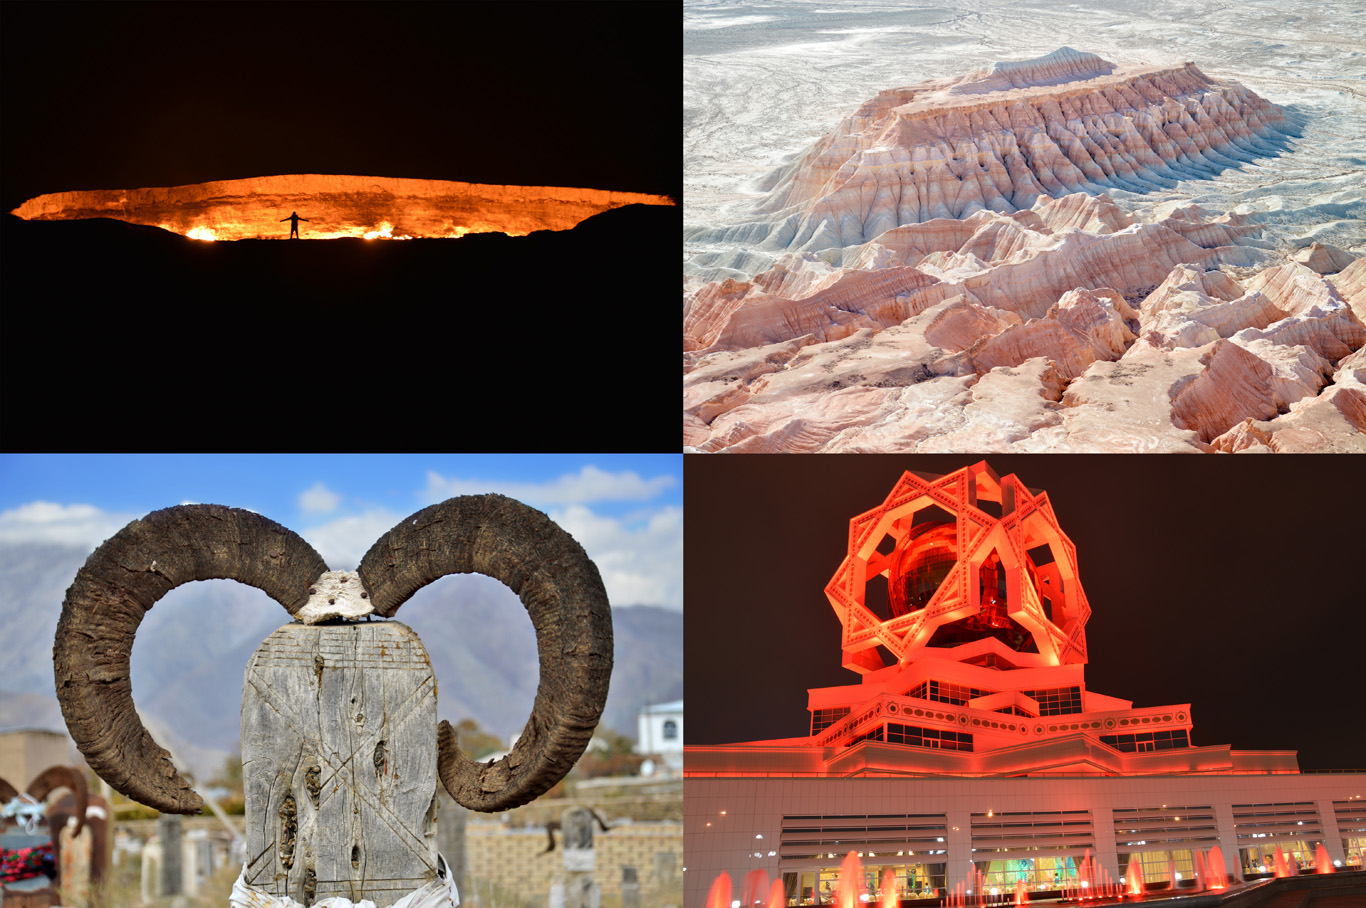 From top left: Door To Hell Crater, Yangykala Canyons, Goat Horns at Tribal Cemetery in Nohur Village and The Wedding Venue in Ashgabat